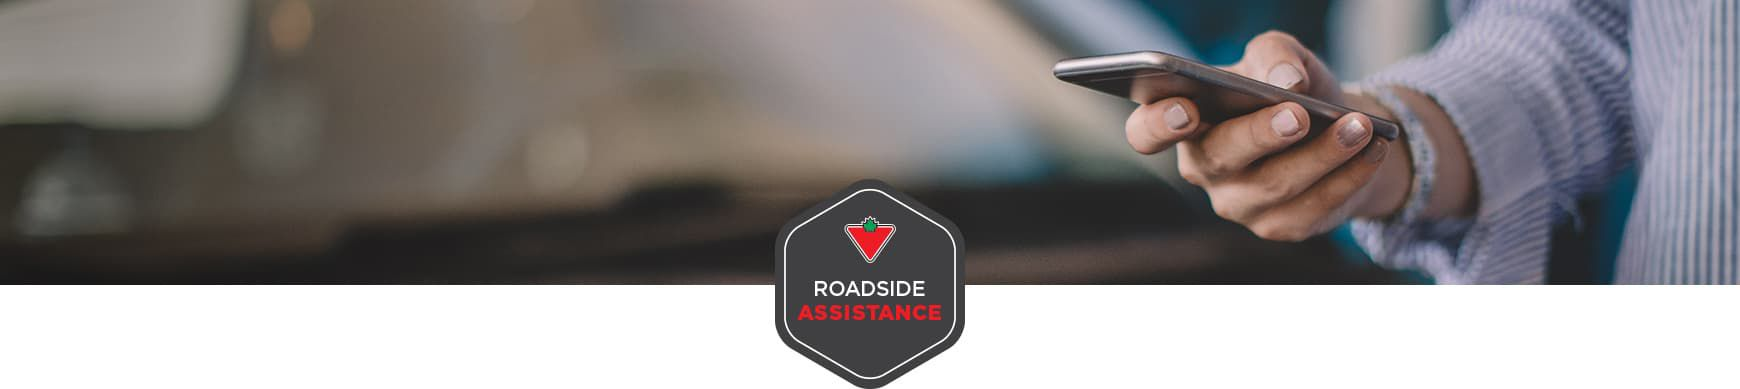 On-Demand Towing & Roadside Assistance